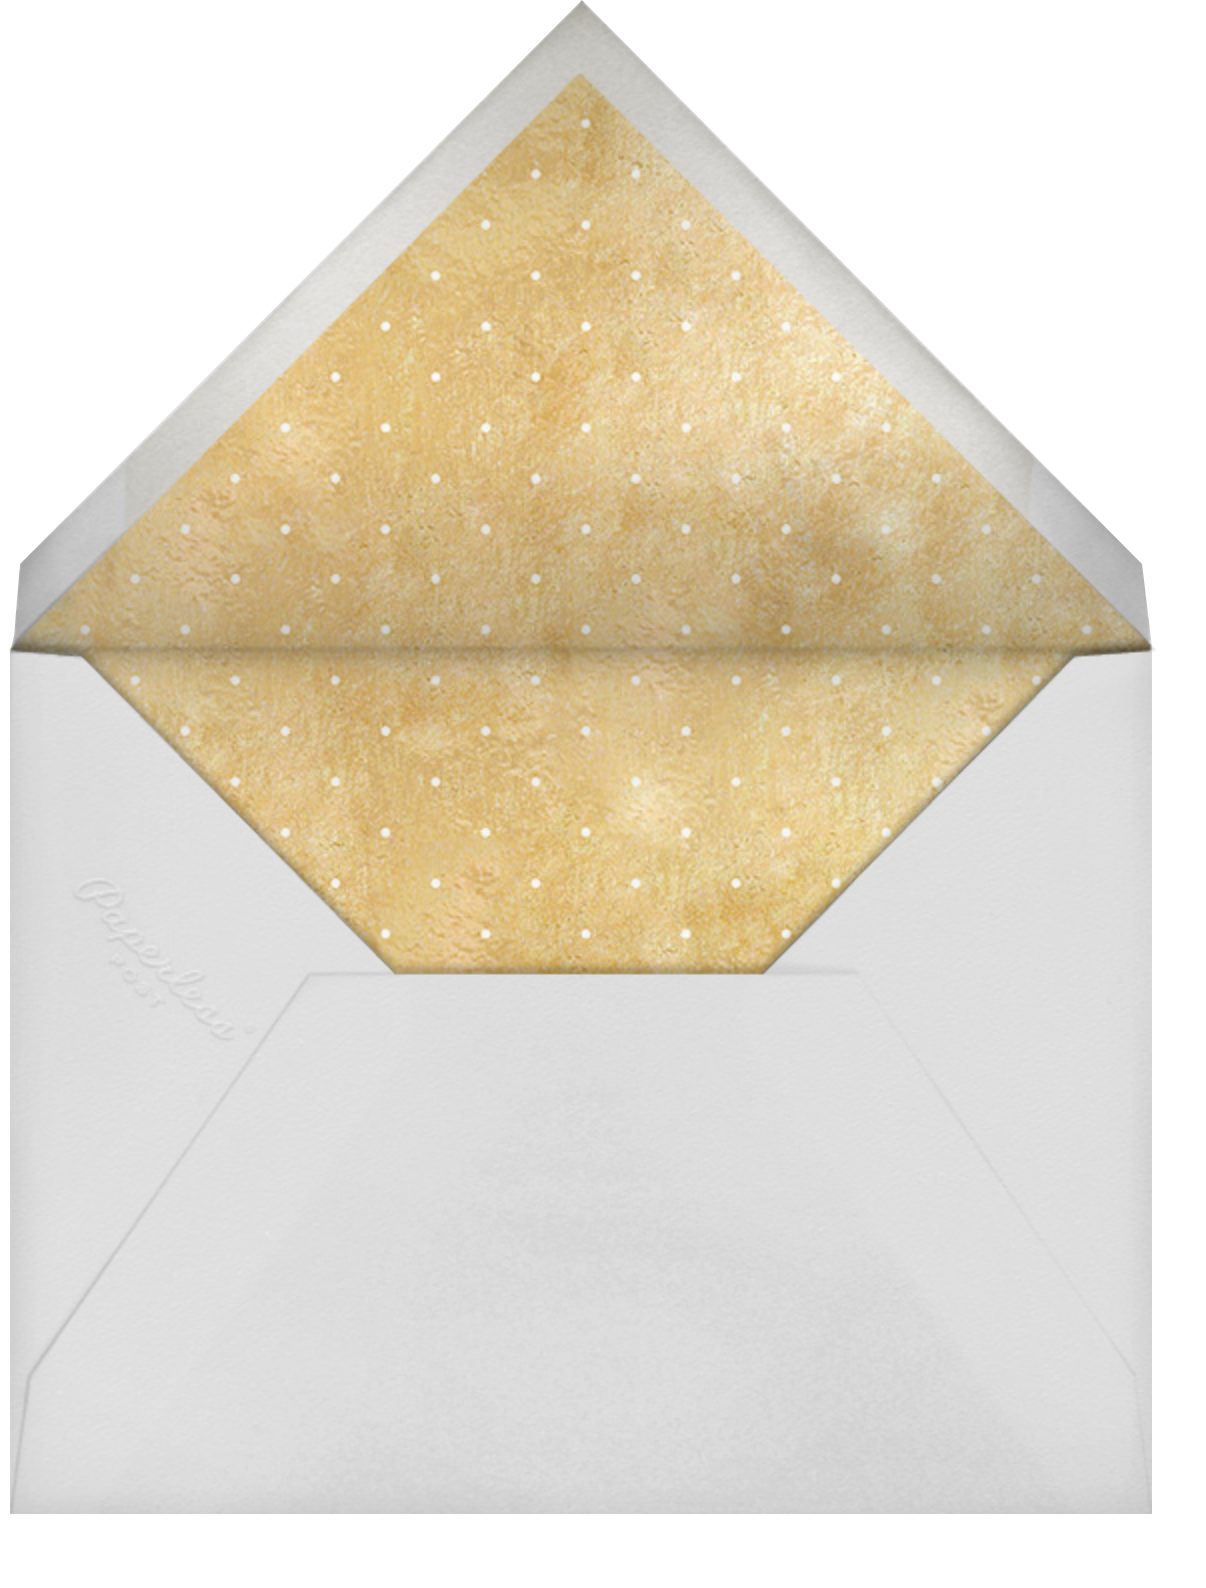 Las Vegas Skyline View (Save the Date) - White/Gold - Paperless Post - Save the date - envelope back